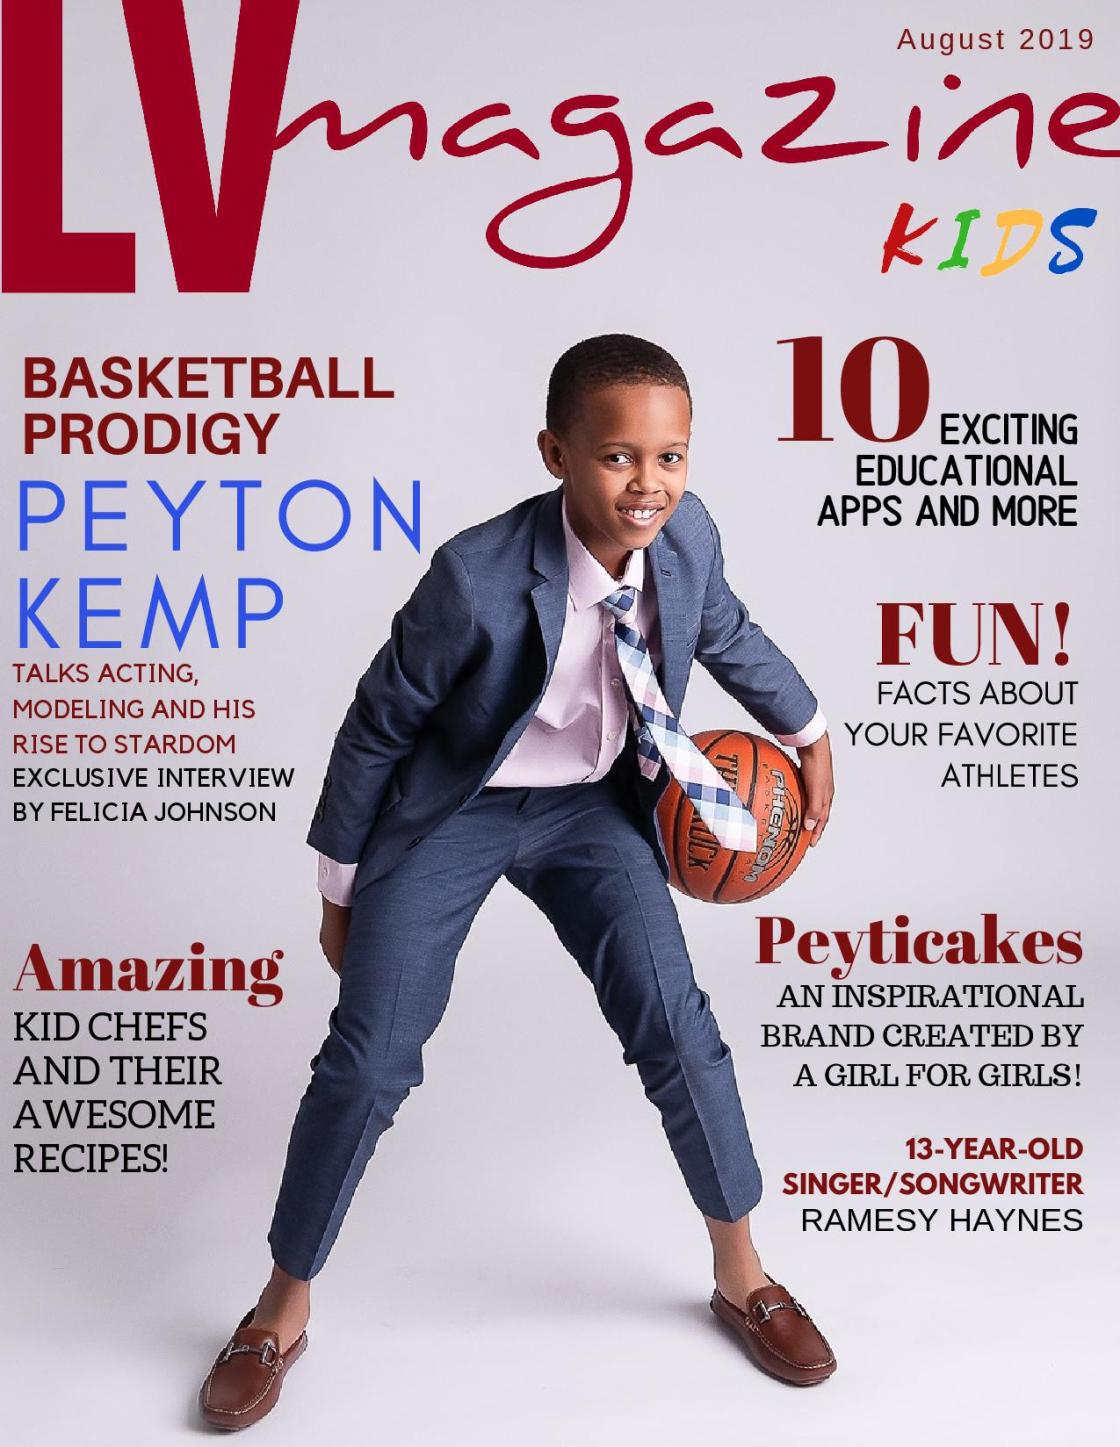 LV+Magazine+Kids+August+2019+Peyton+Kemp+(Cover+#2)-page-001.jpg